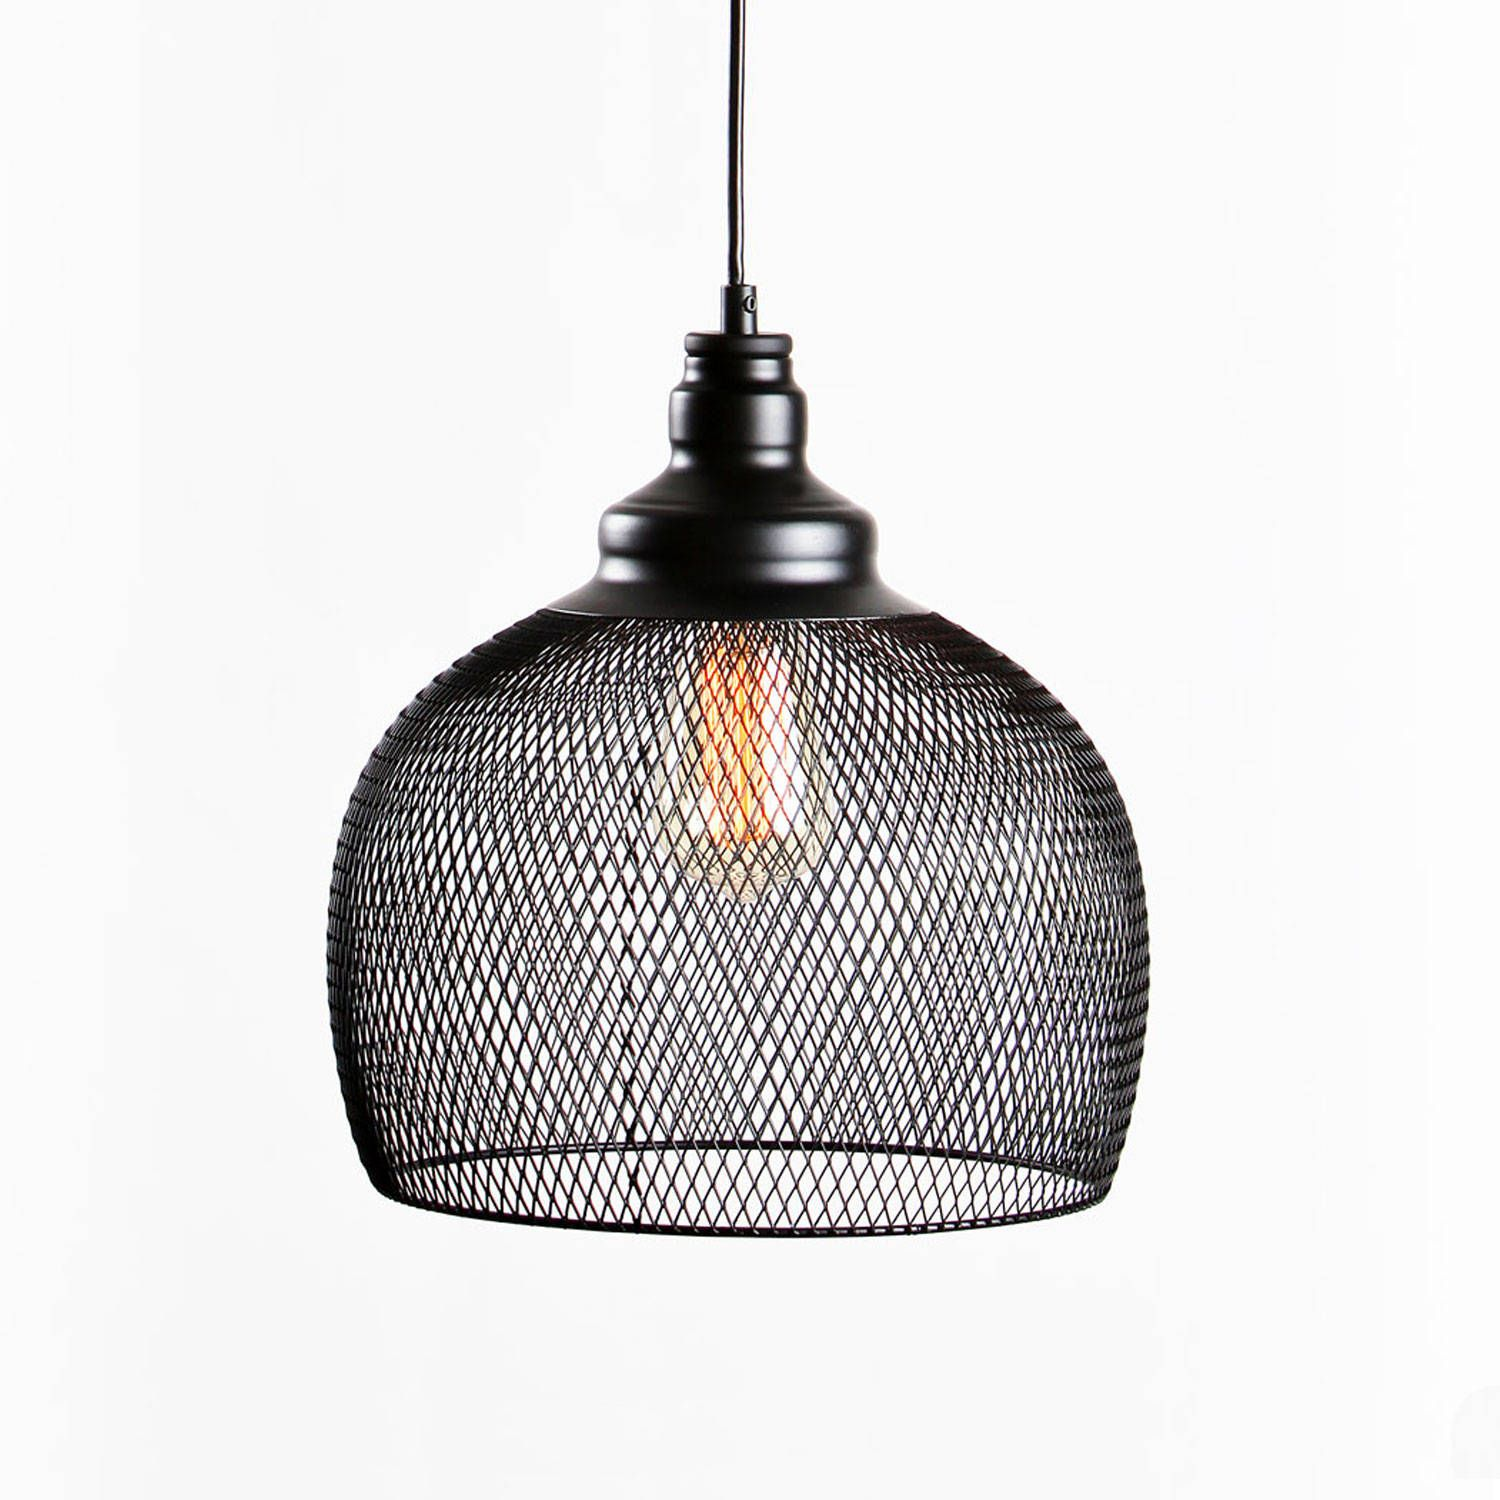 industrial look lighting. Black Iron Hanging Mesh Cage Pendant With Vintage Bulb Rustic, Industrial Look For Home Or Lighting :